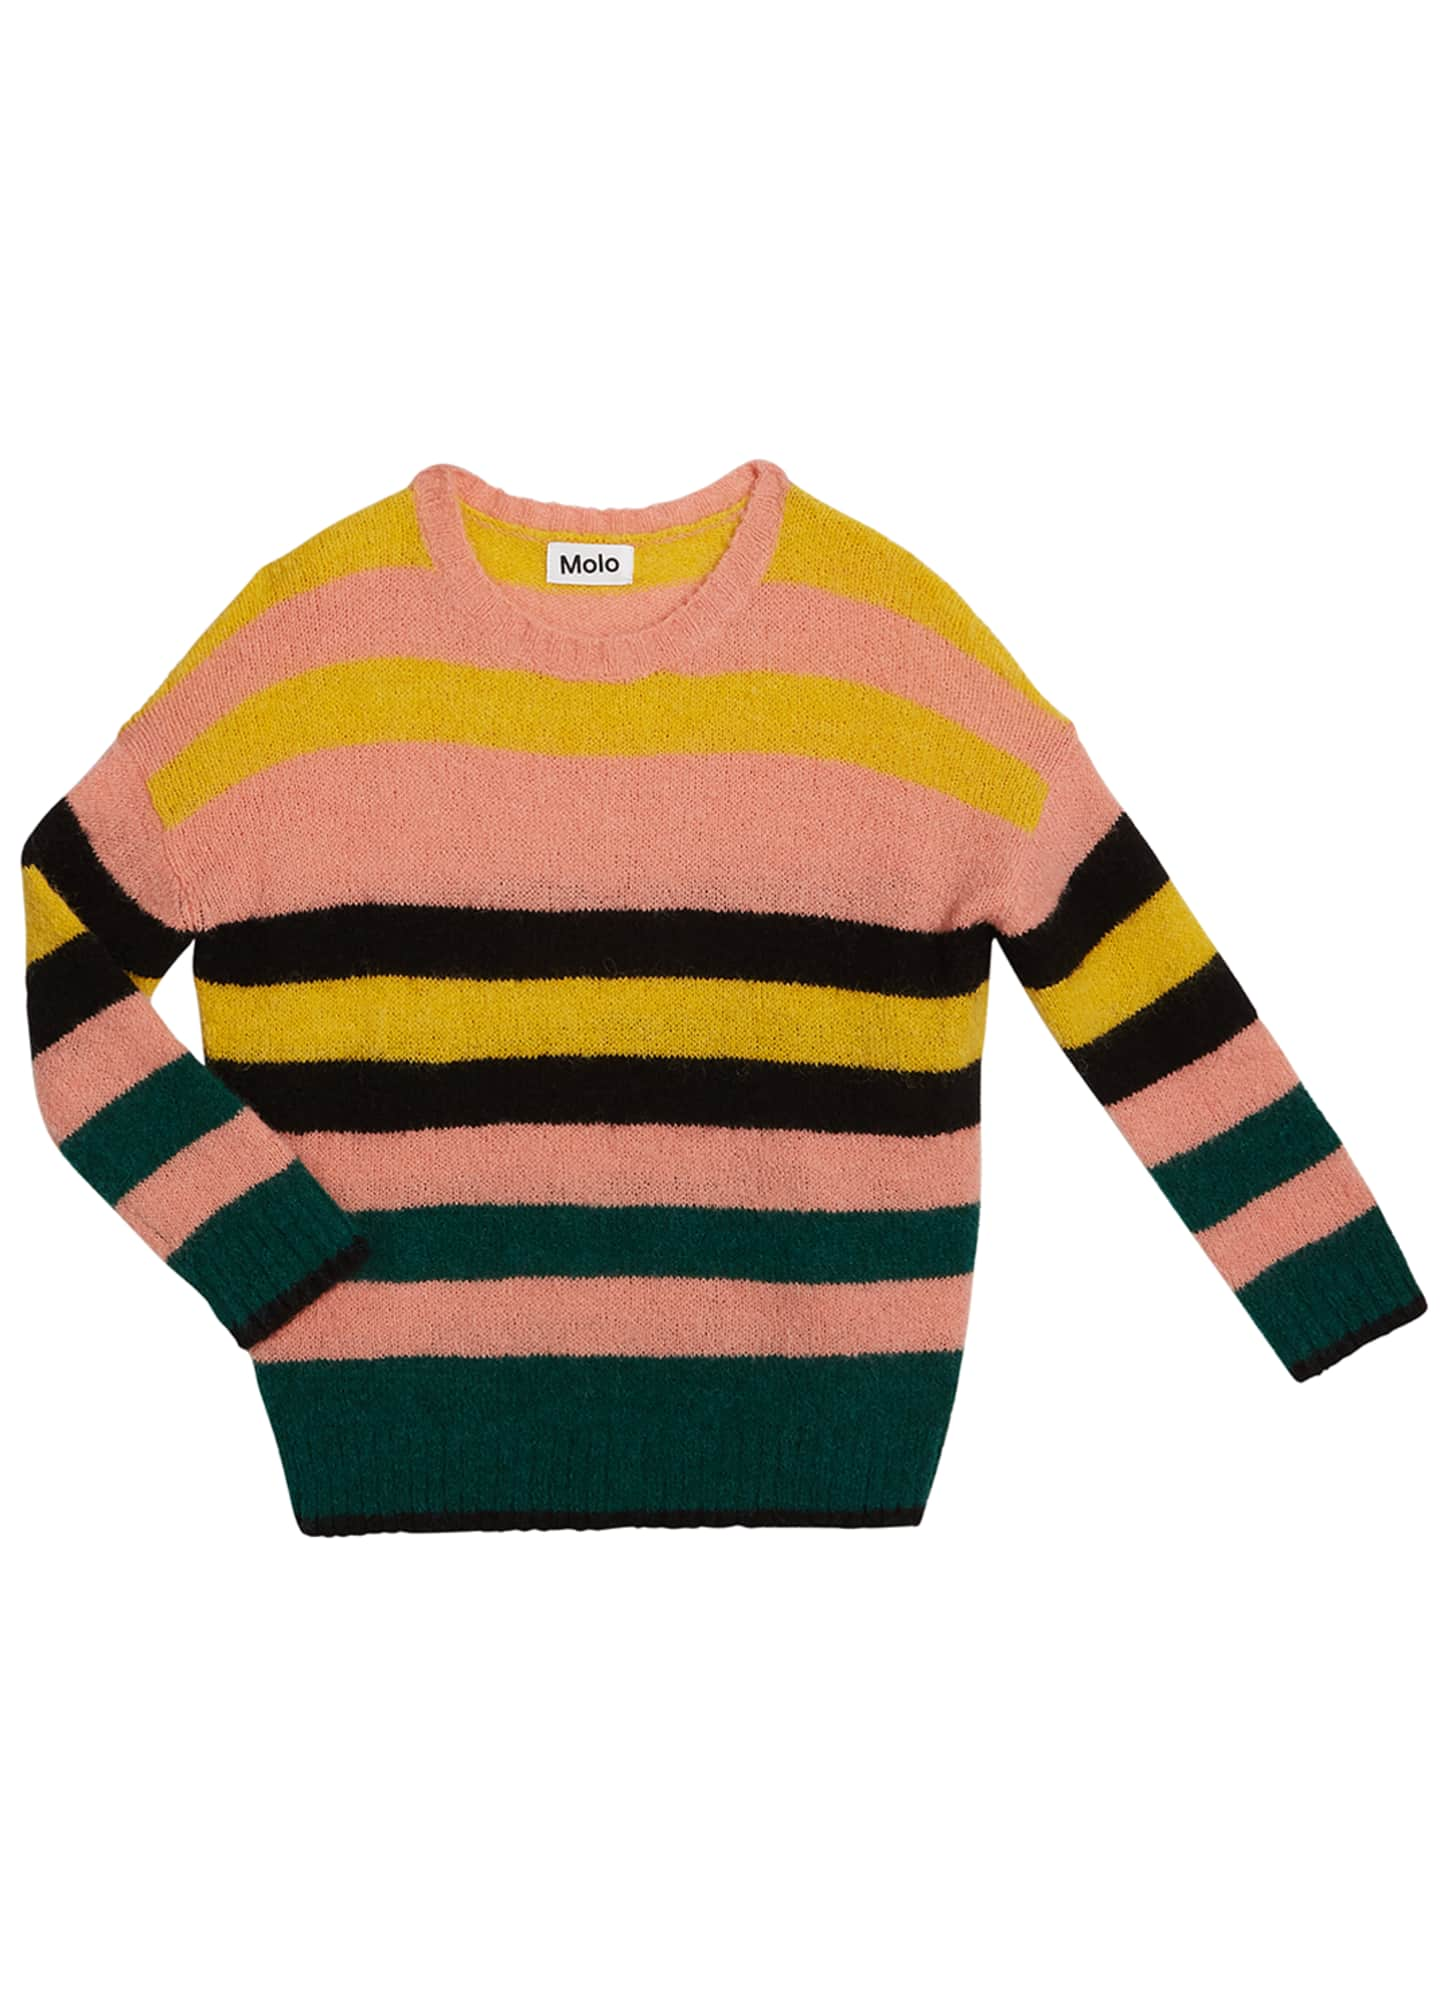 Molo Geneen Mixed Stripe Mohair-Blend Sweater, Size 5-16